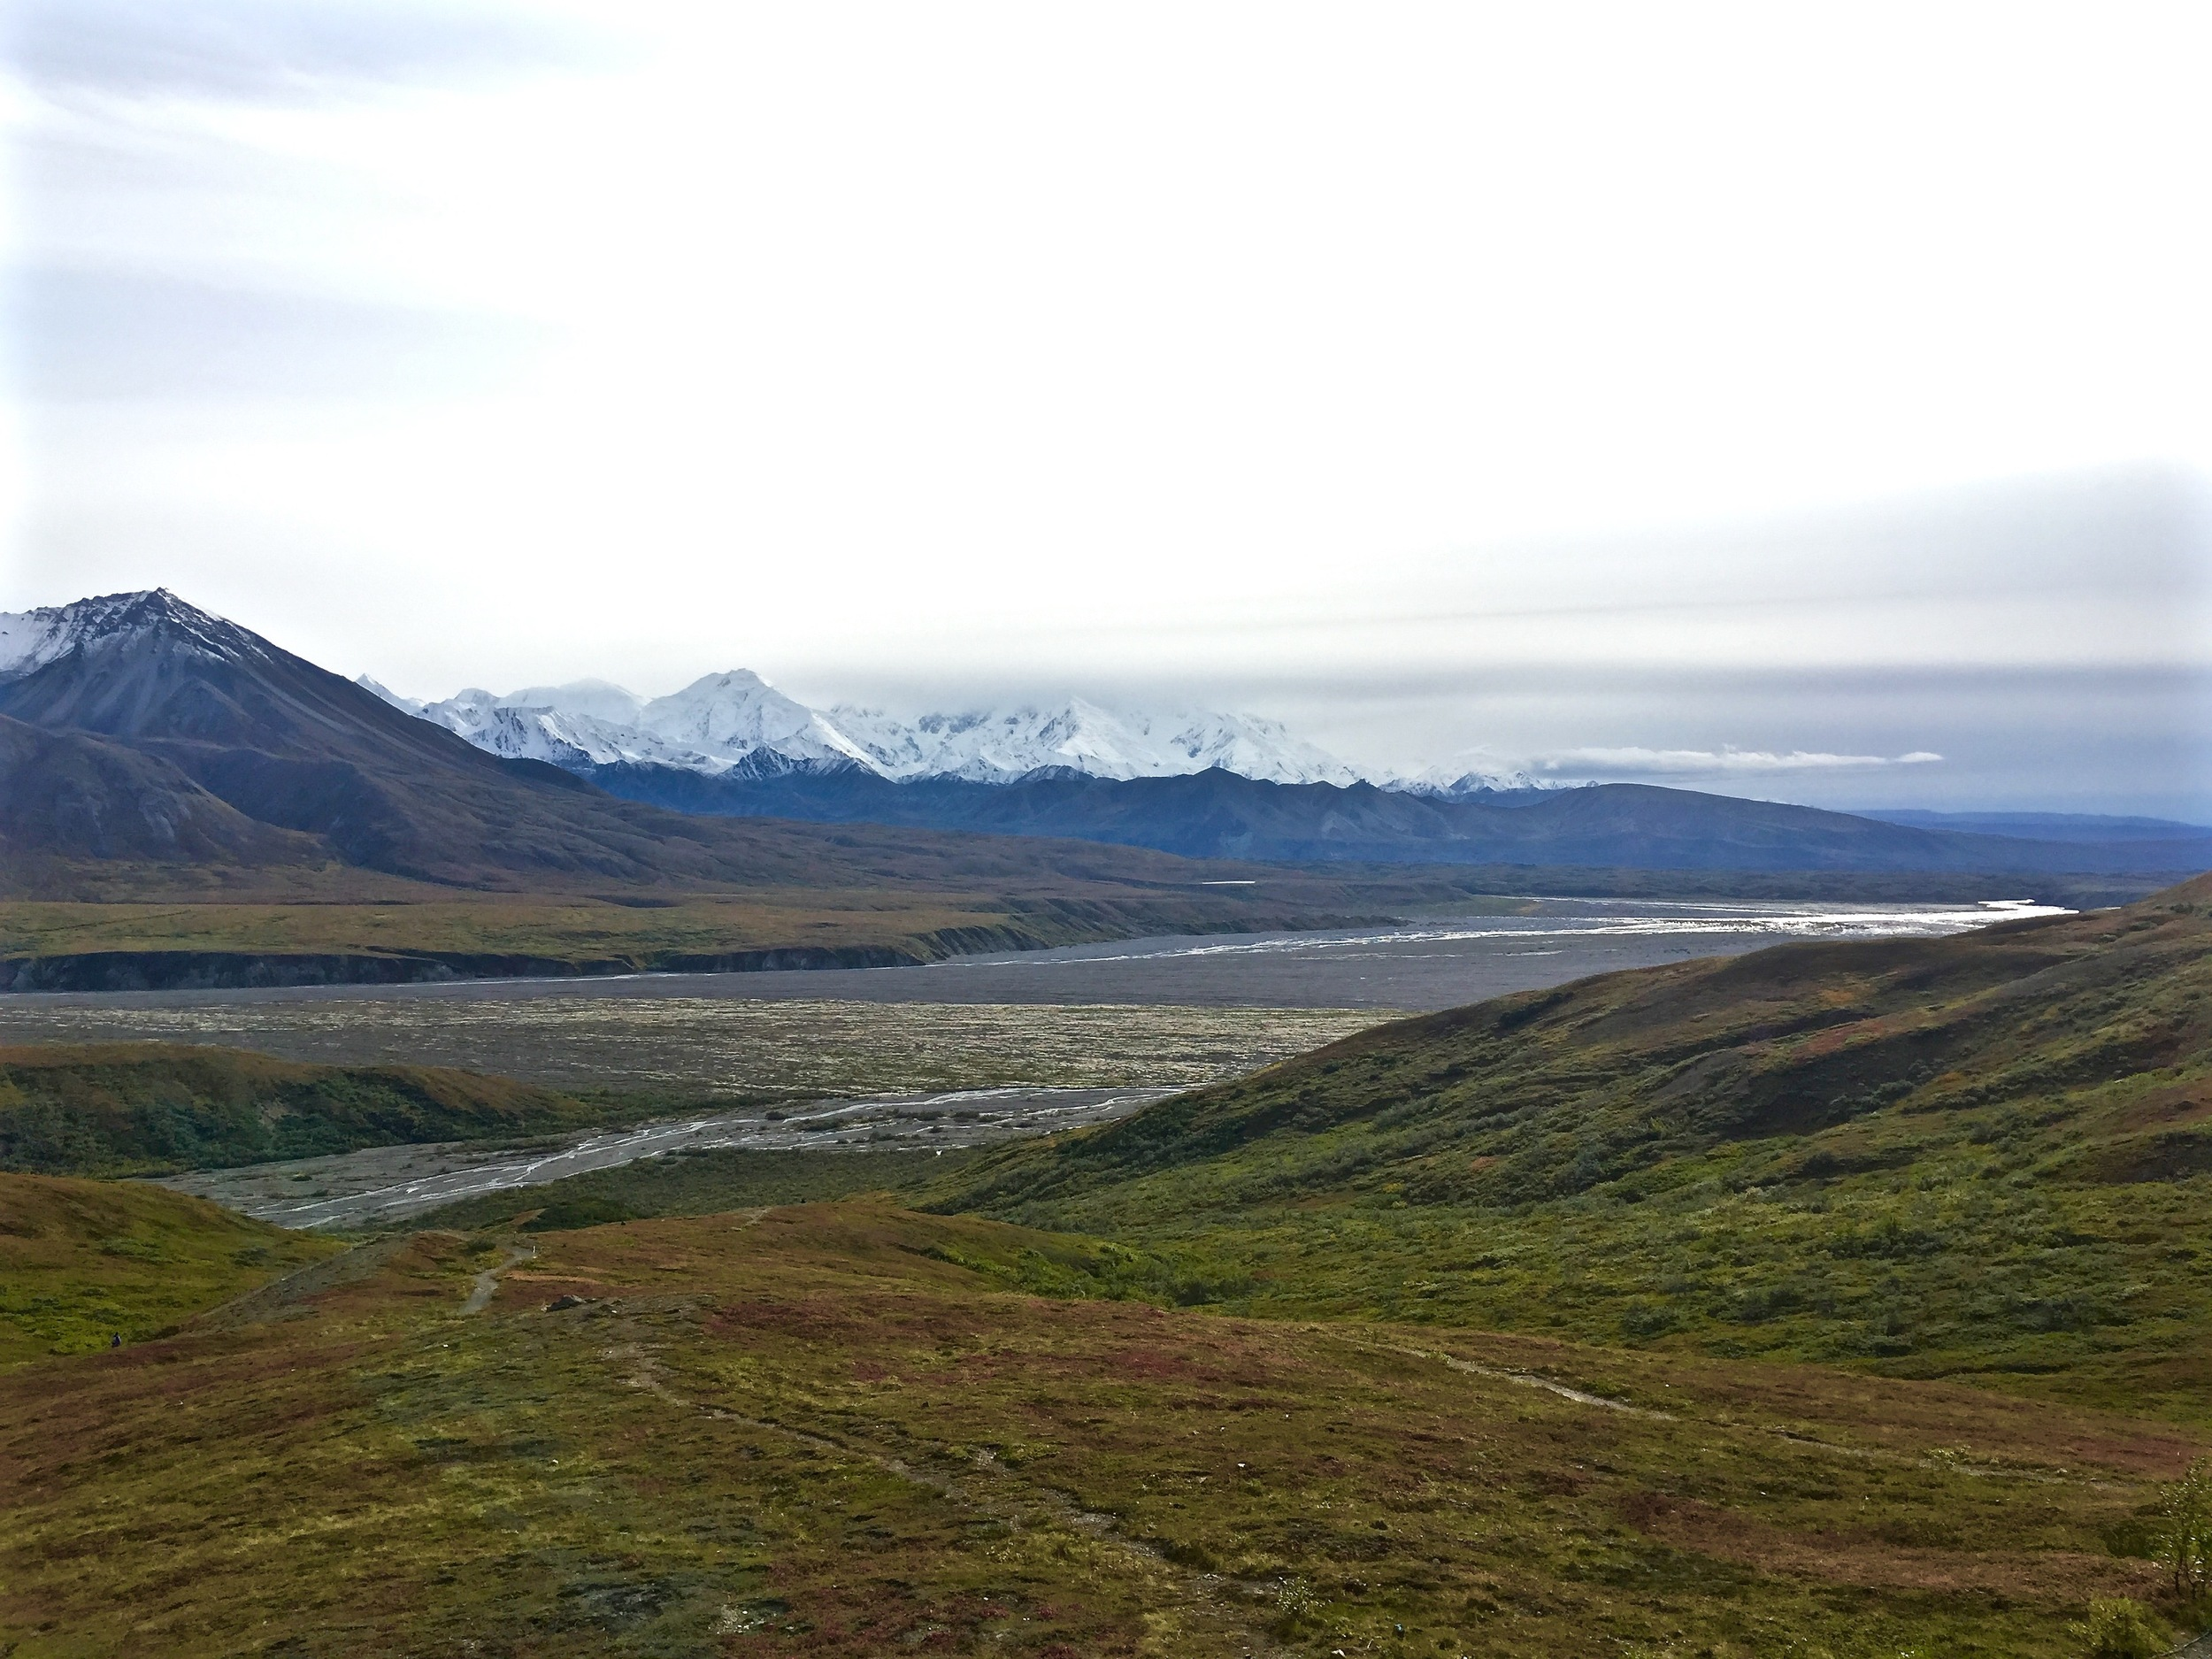 'The High One' is obscured by the clouds. This was taken from the Eielson visitor's center about half way down the Denali park road